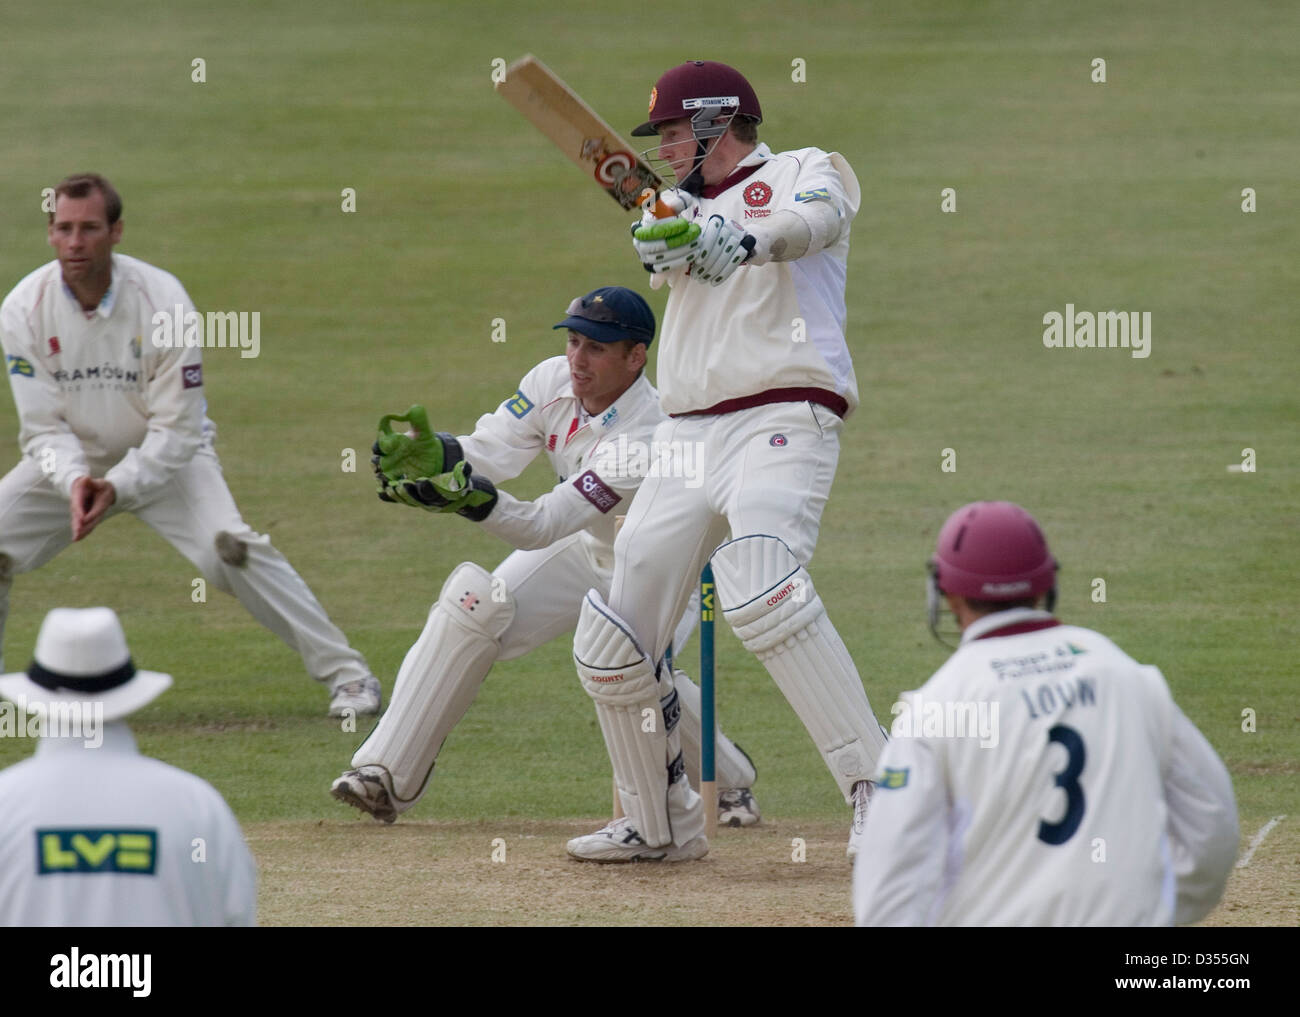 22.05.08 Glamorgan v Northants at St. Helens Swansea Northants' David Lucas cuts away for four. - Stock Image